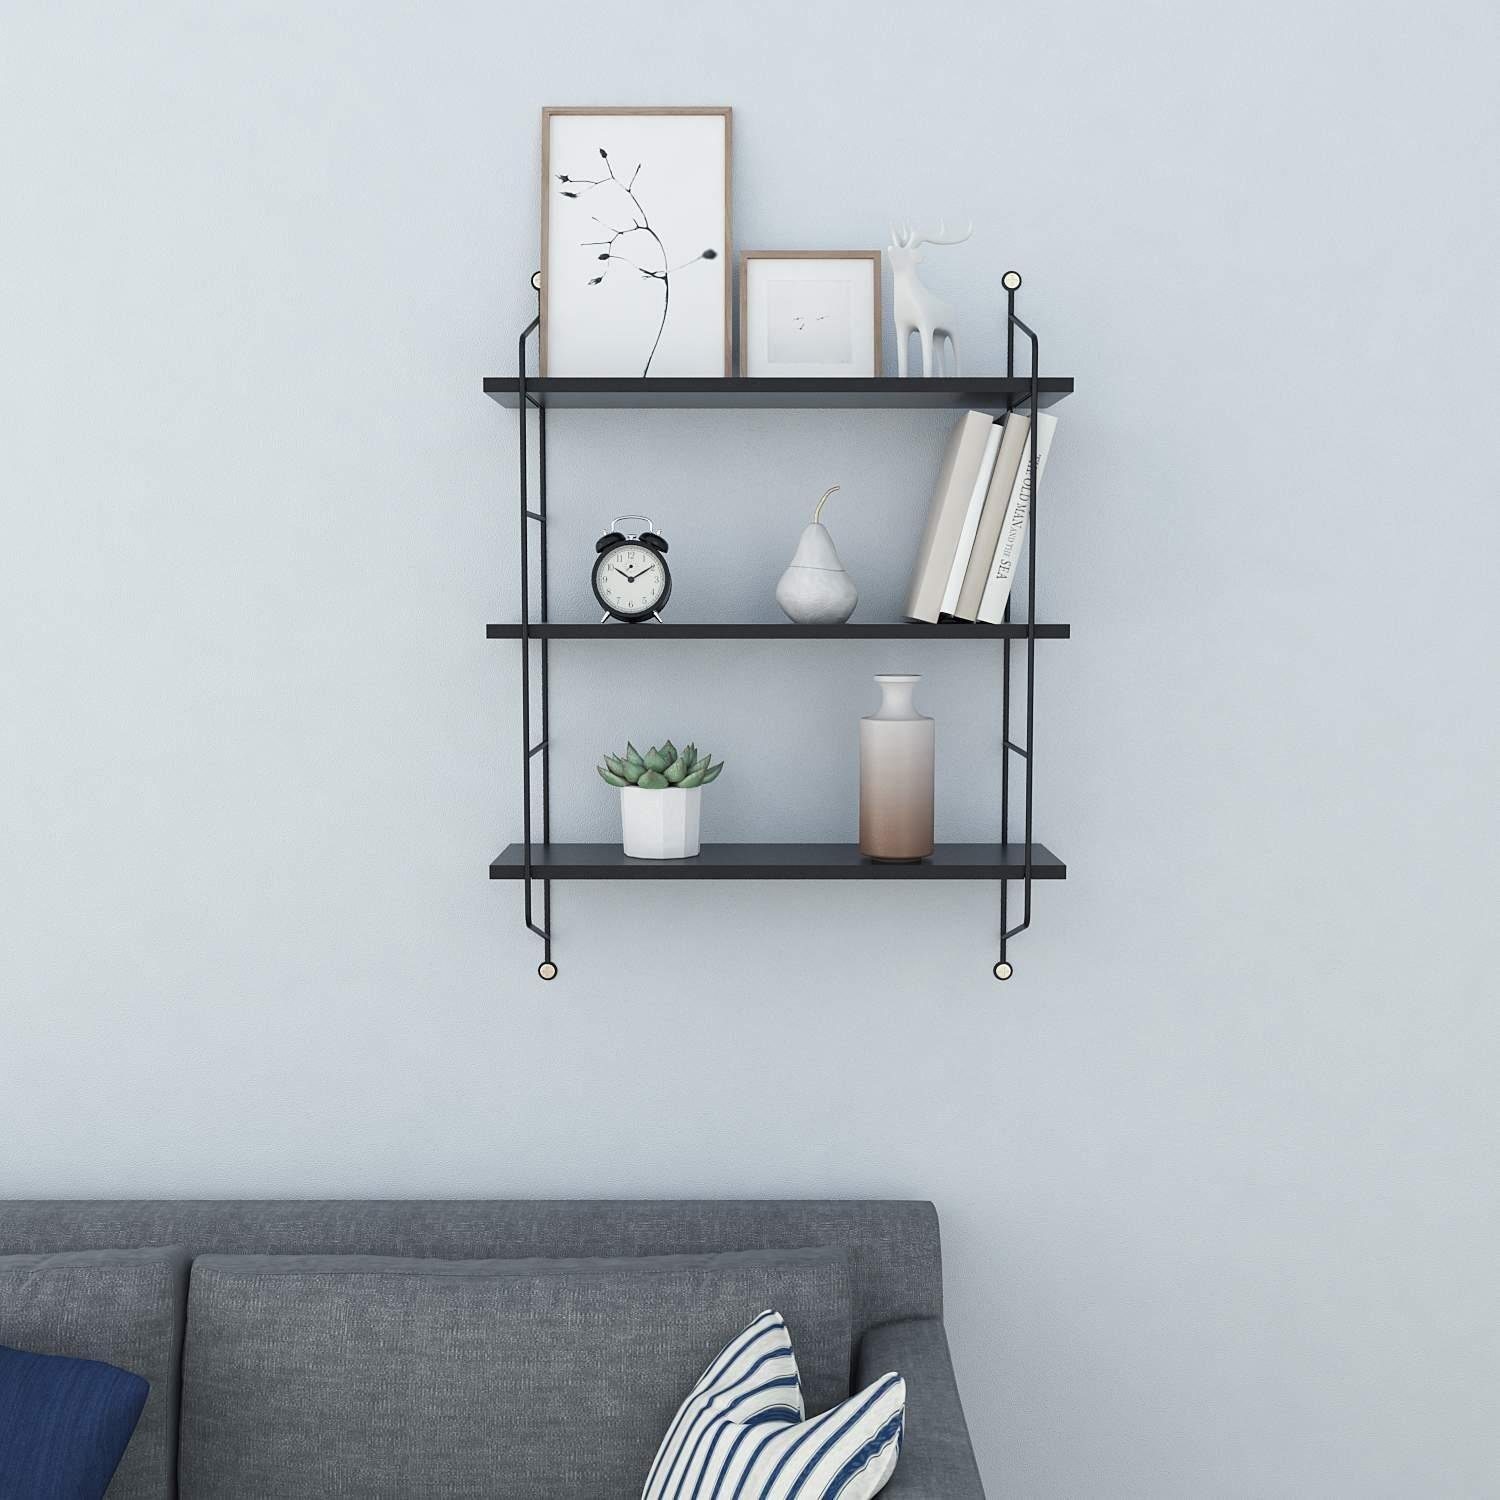 Amazon.com: Utheing 3 Tier Floating Wall Shelves, Wood Rustic ...